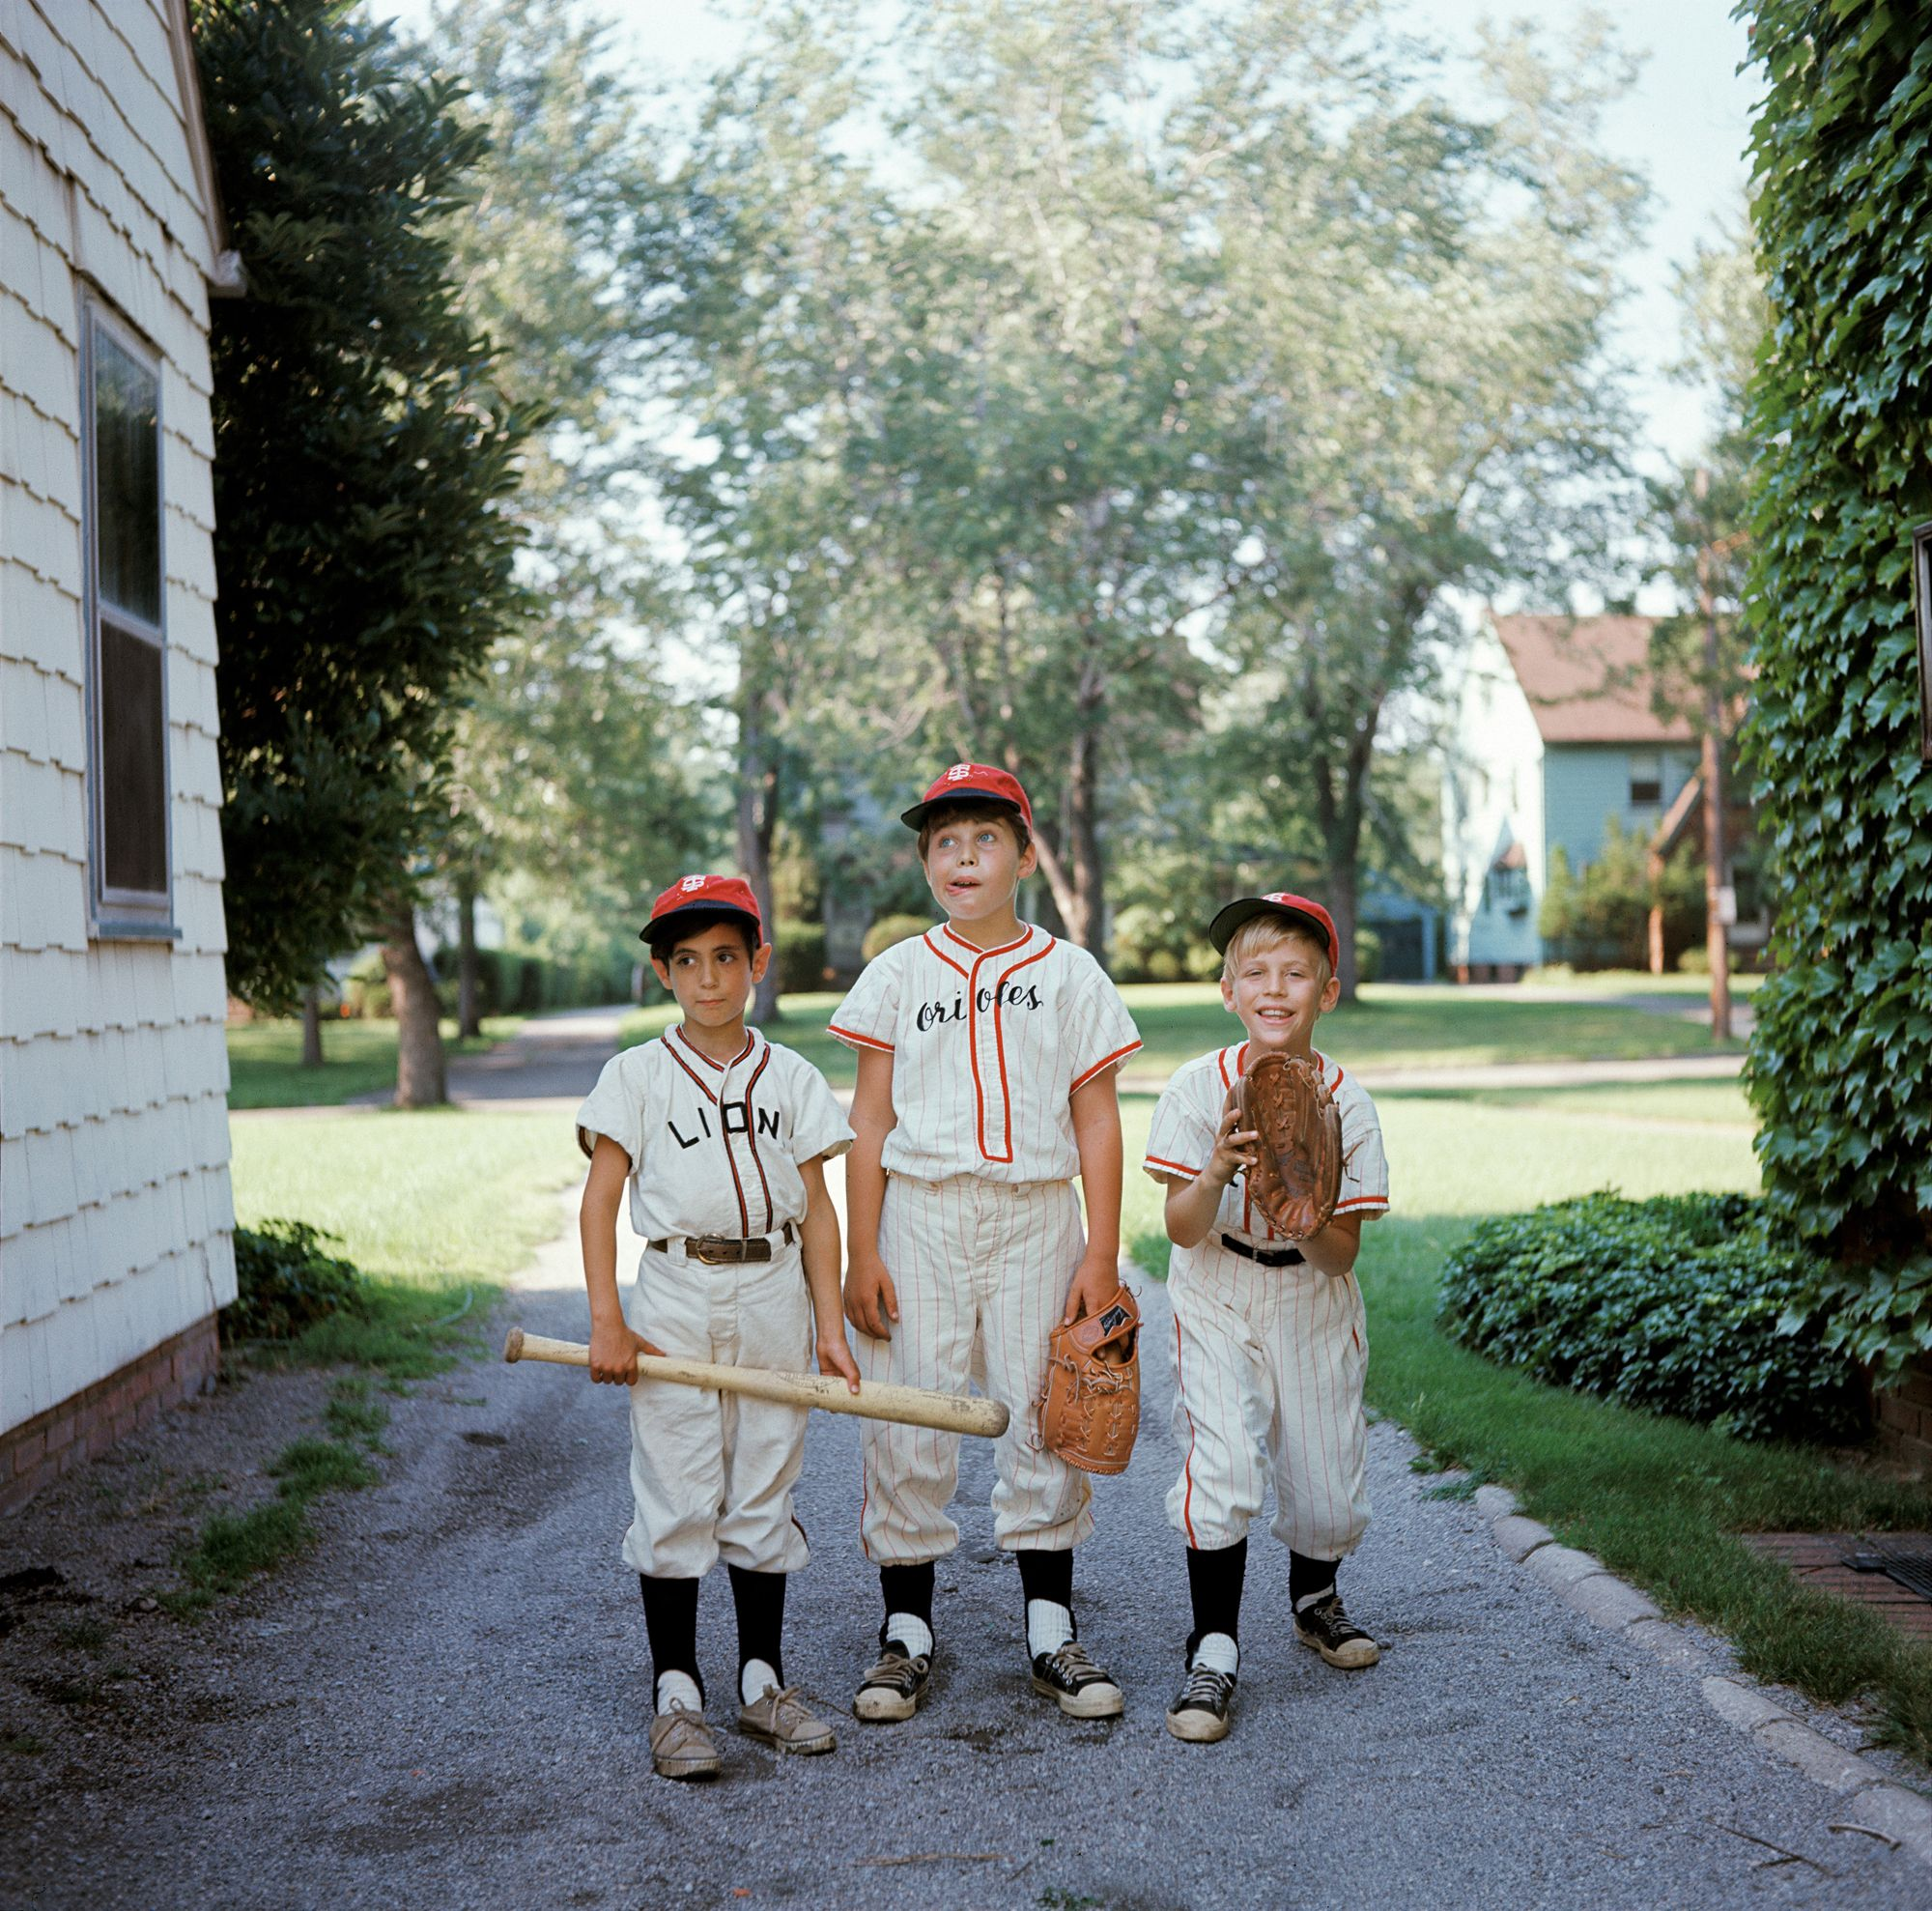 Past Lives in Kodachrome: Anonymous family photographs from the midcentury